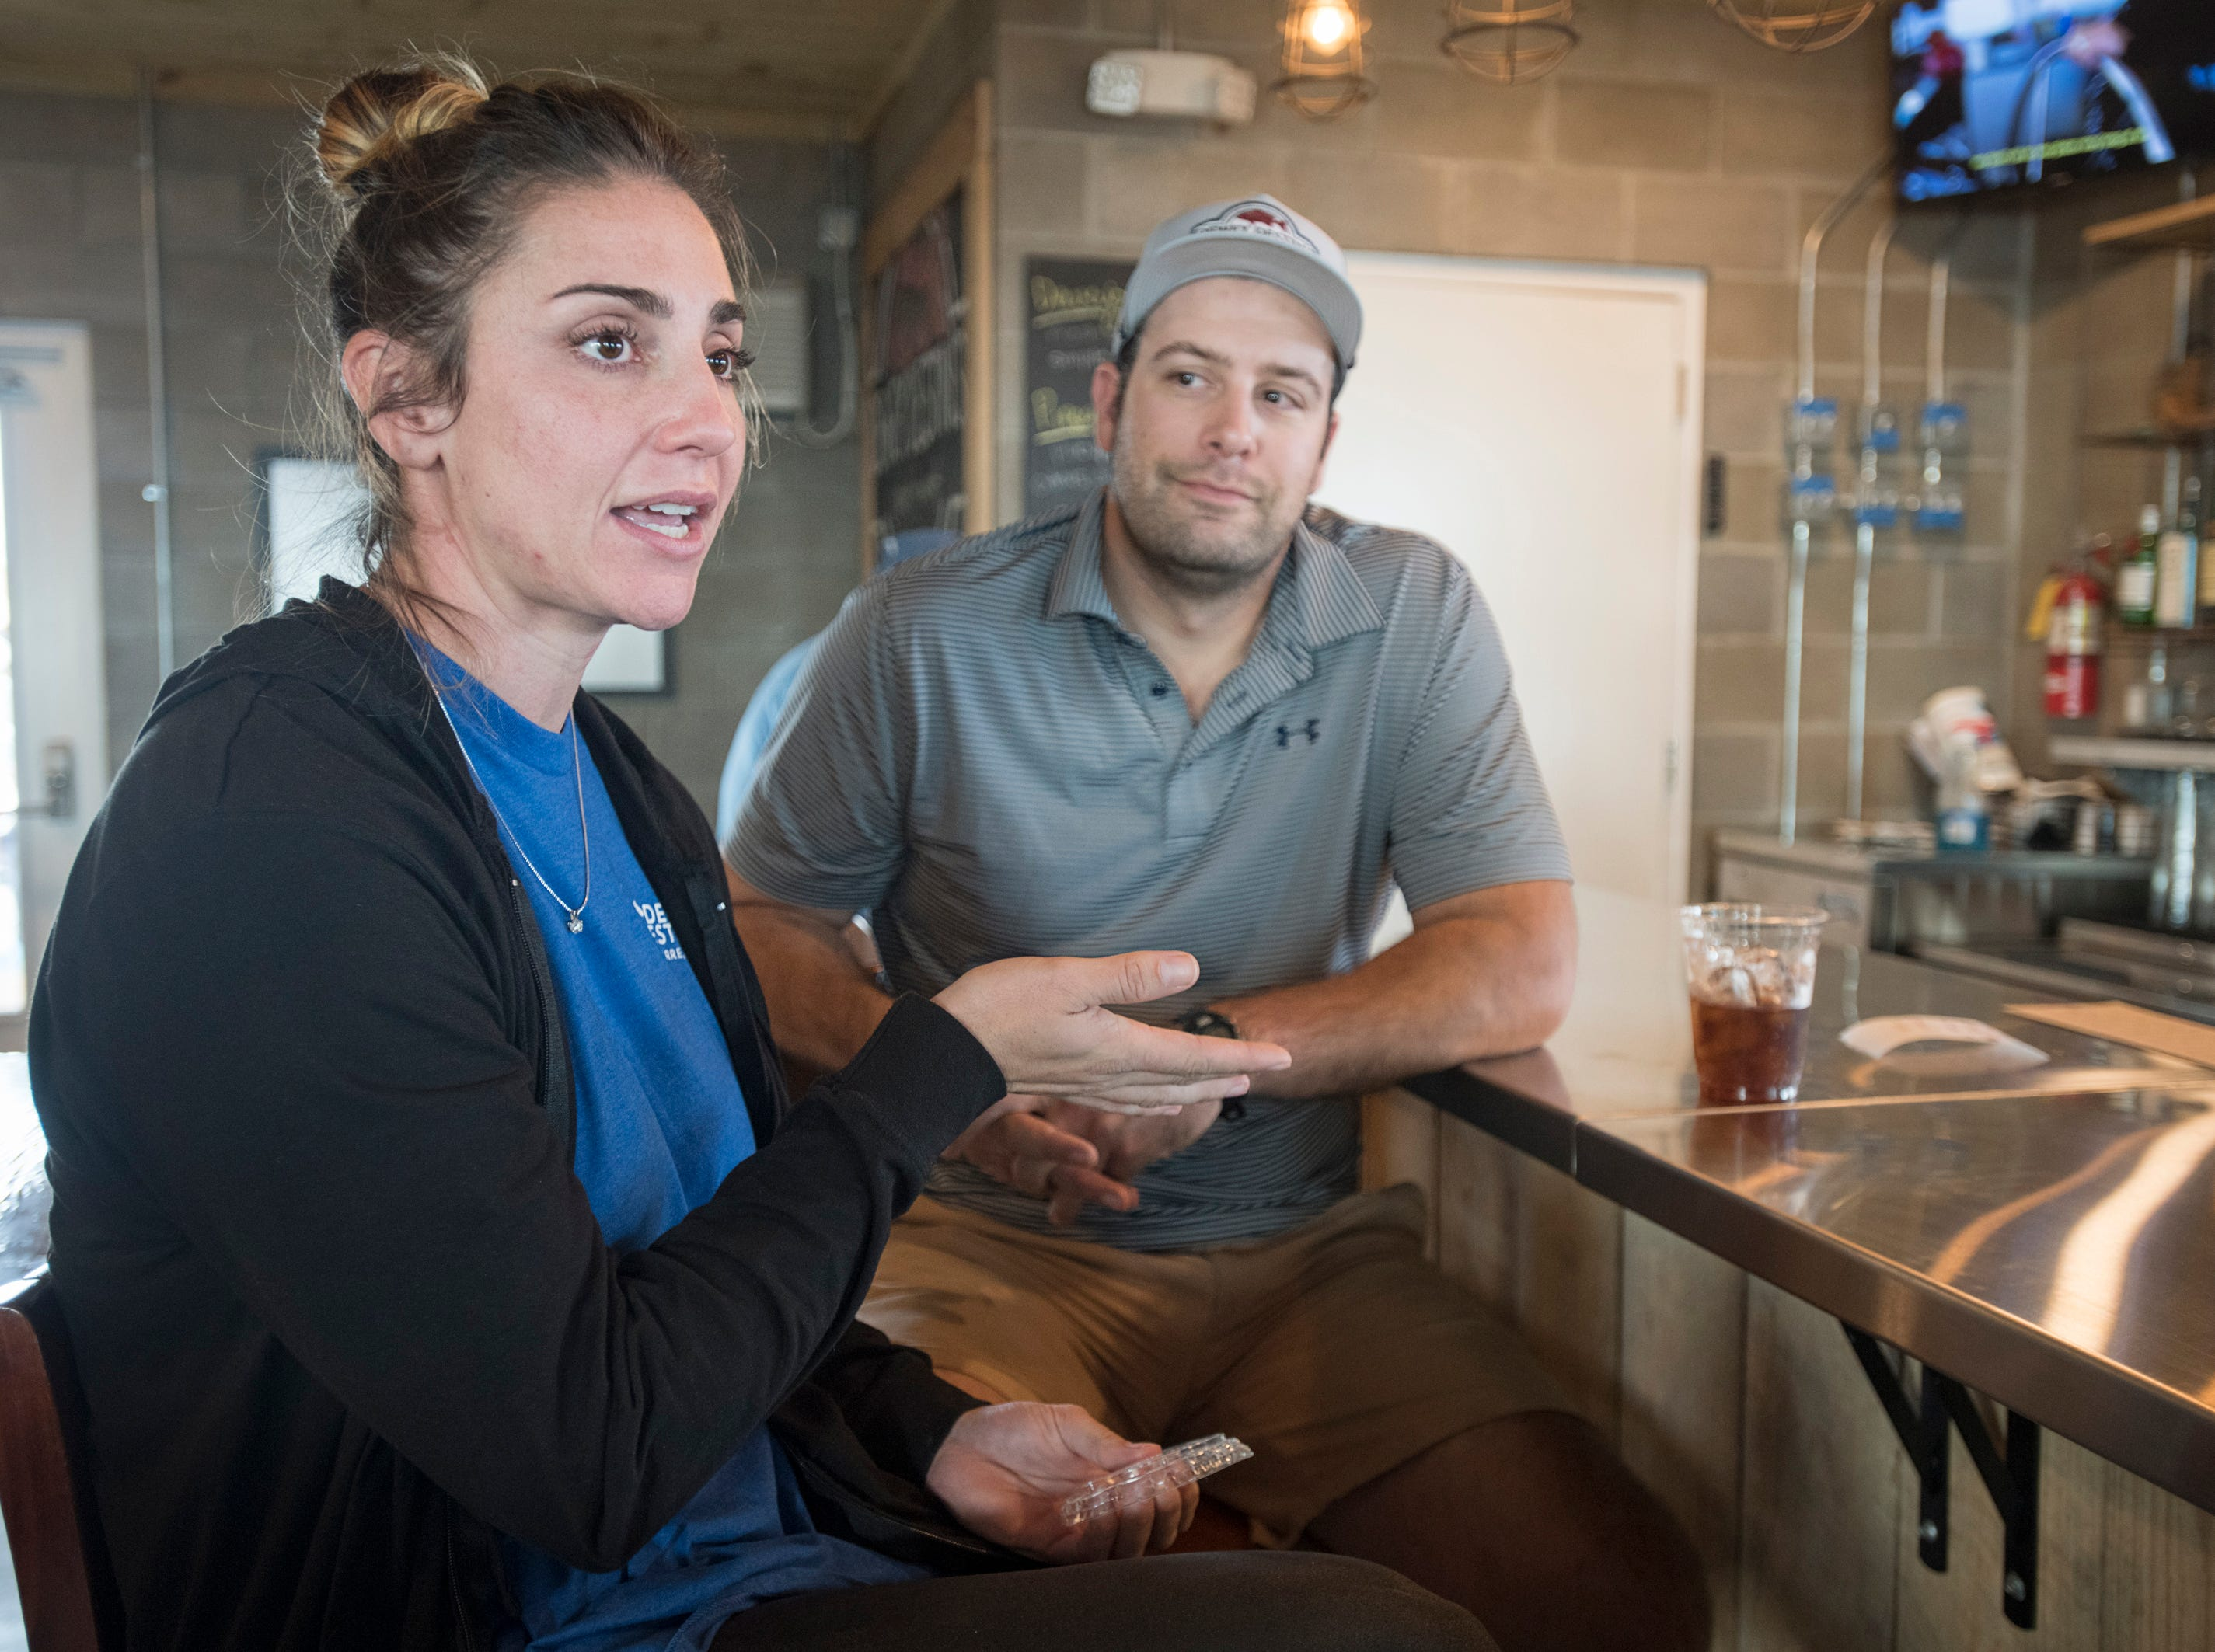 Co-owners Cameron Destin-Ayres, left, and Parker Destin talk about their new Dewey Destin Seafood Restaurant in Navarre on Thursday, November 29, 2018.